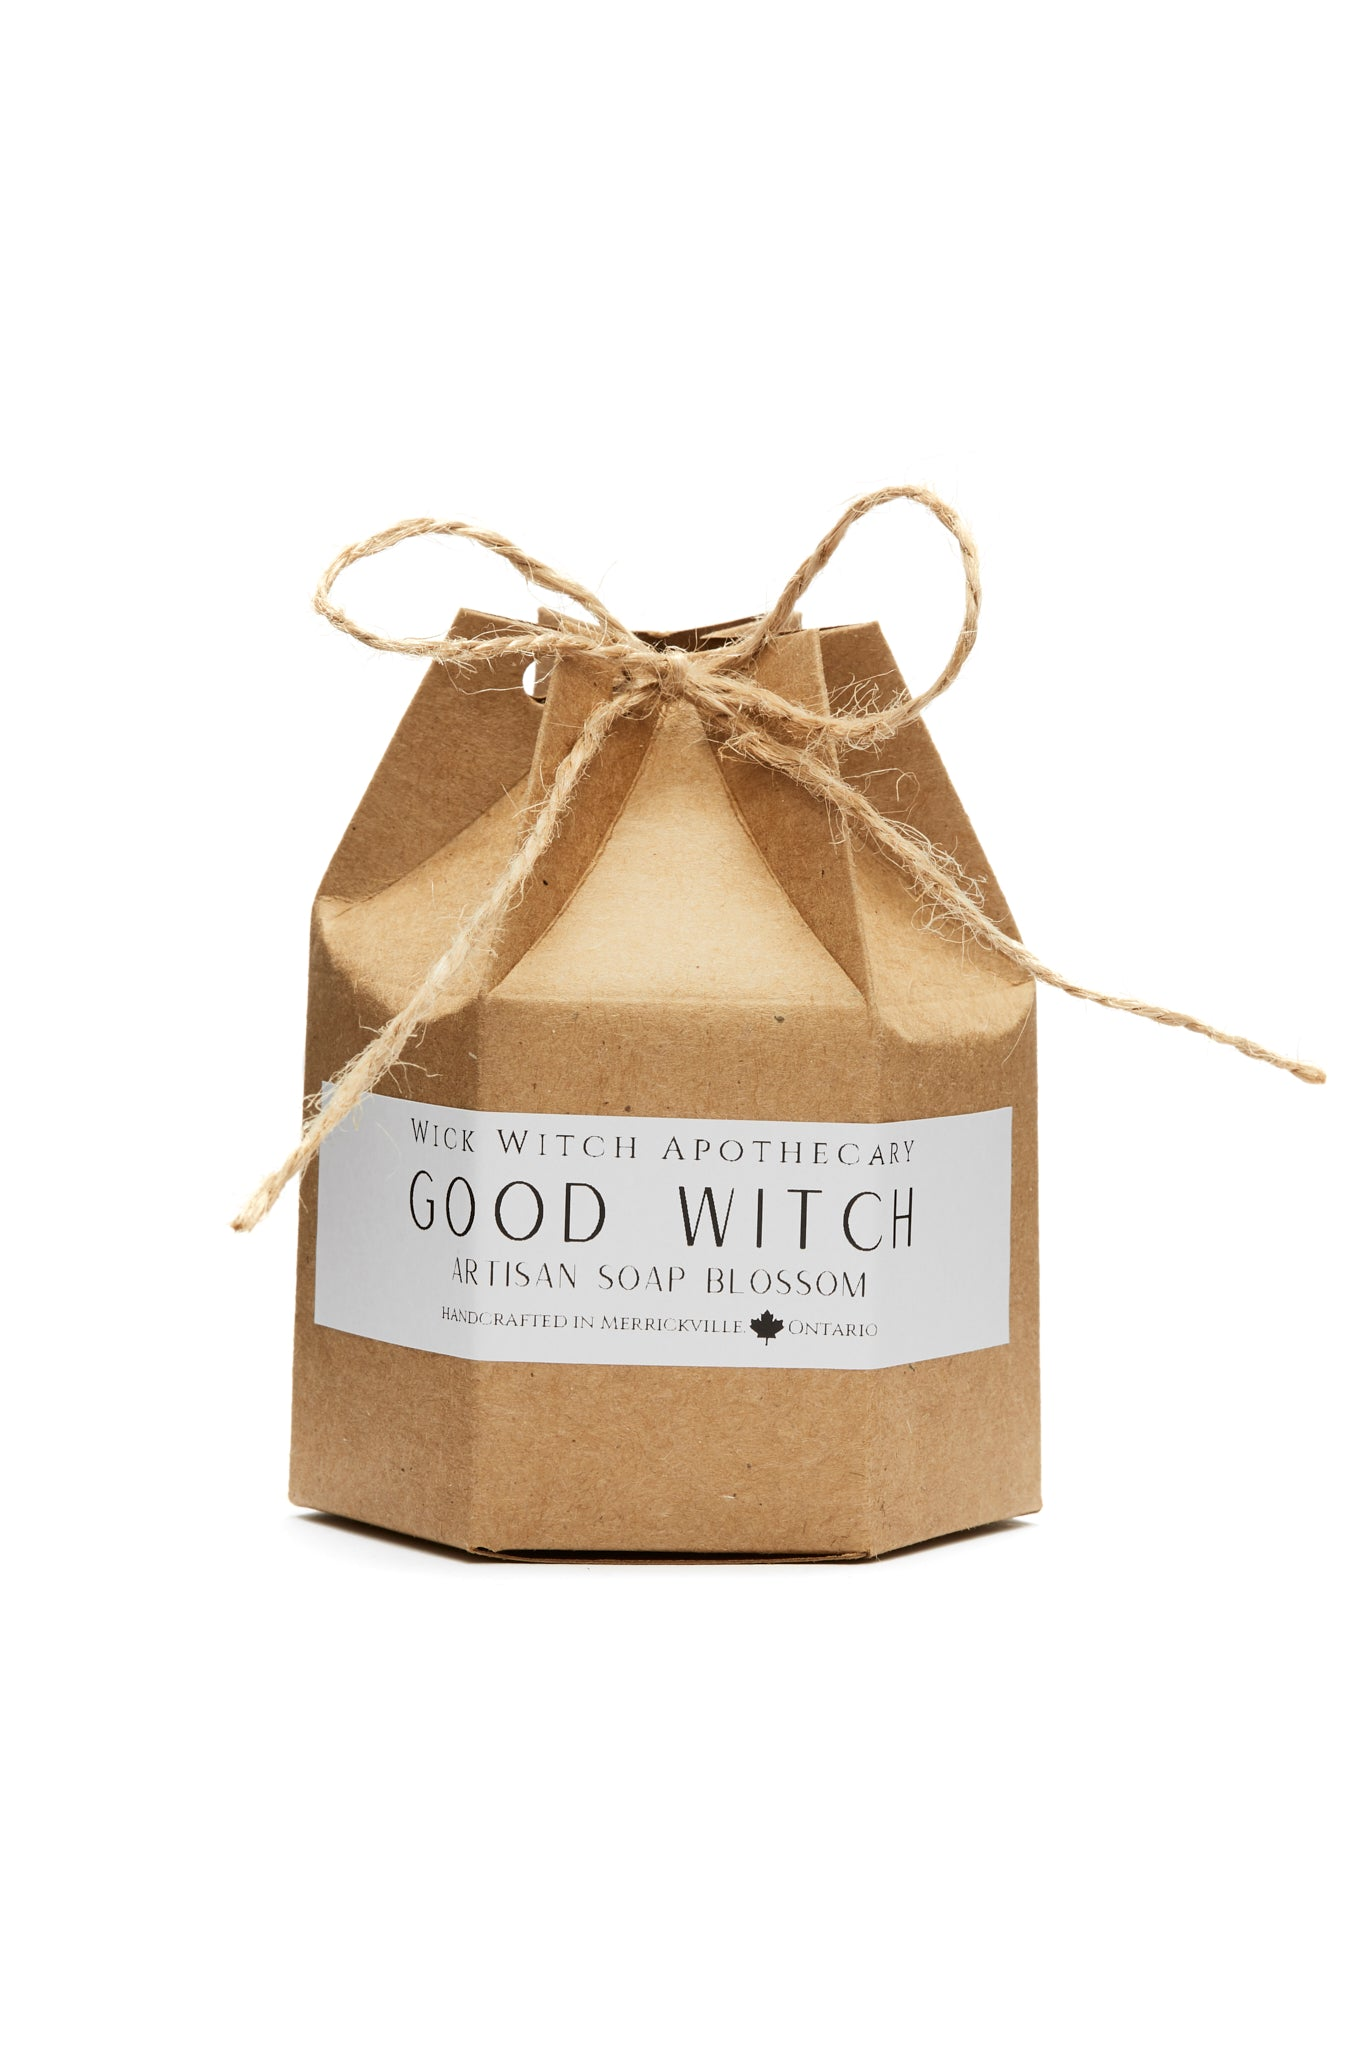 GOOD WITCH ARTISAN SOAP BLOSSOM